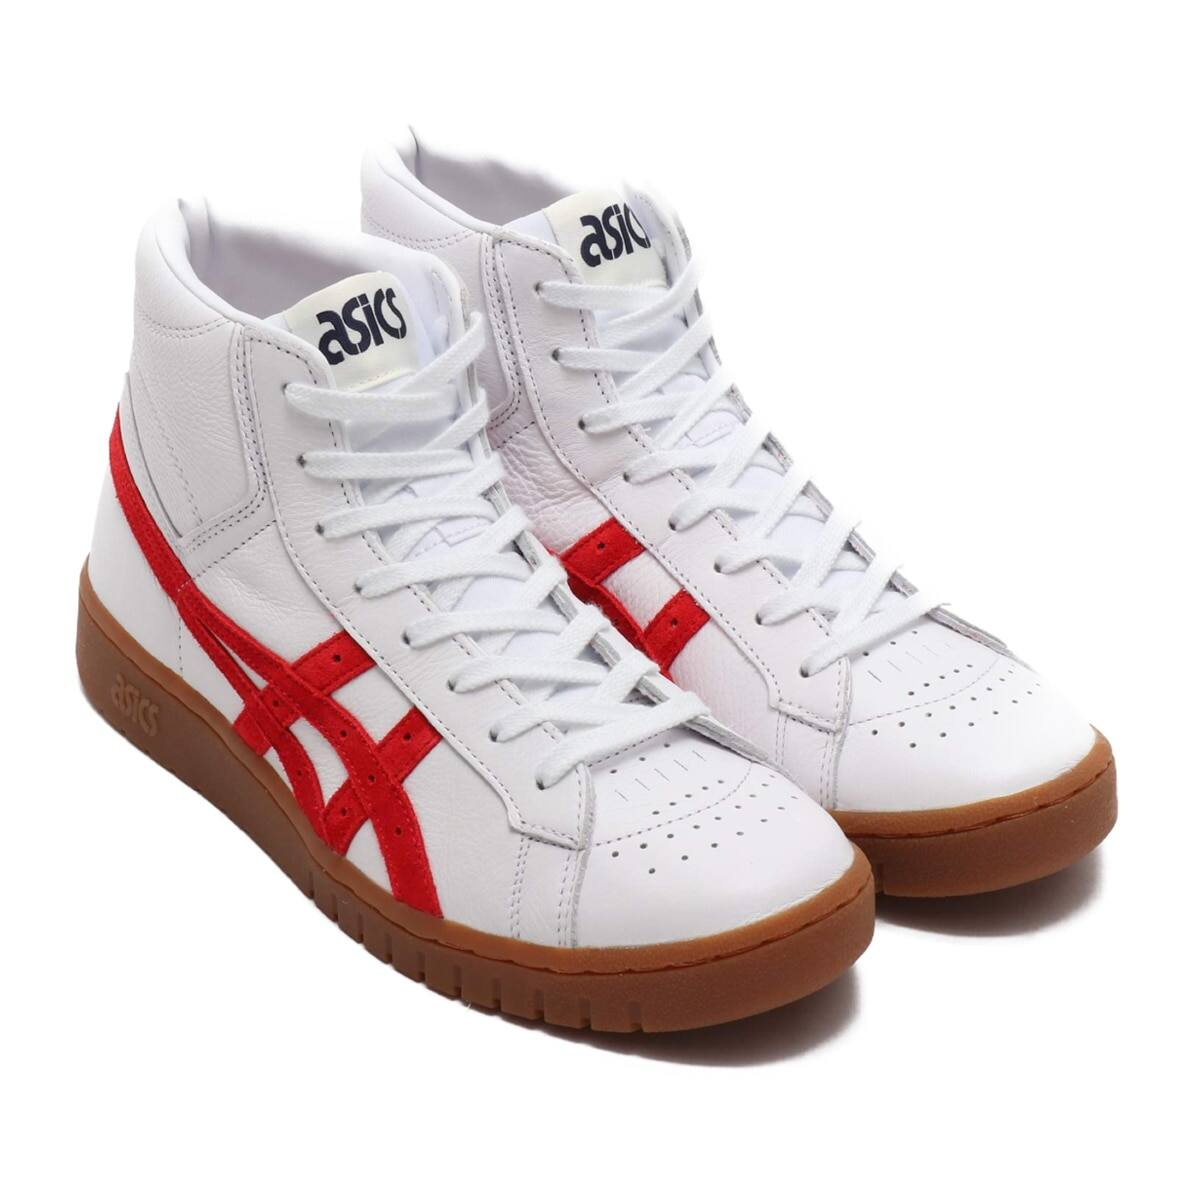 ASICSTIGER GEL-PTG MT WHITE/CLASSIC RED 18FW-I_photo_large